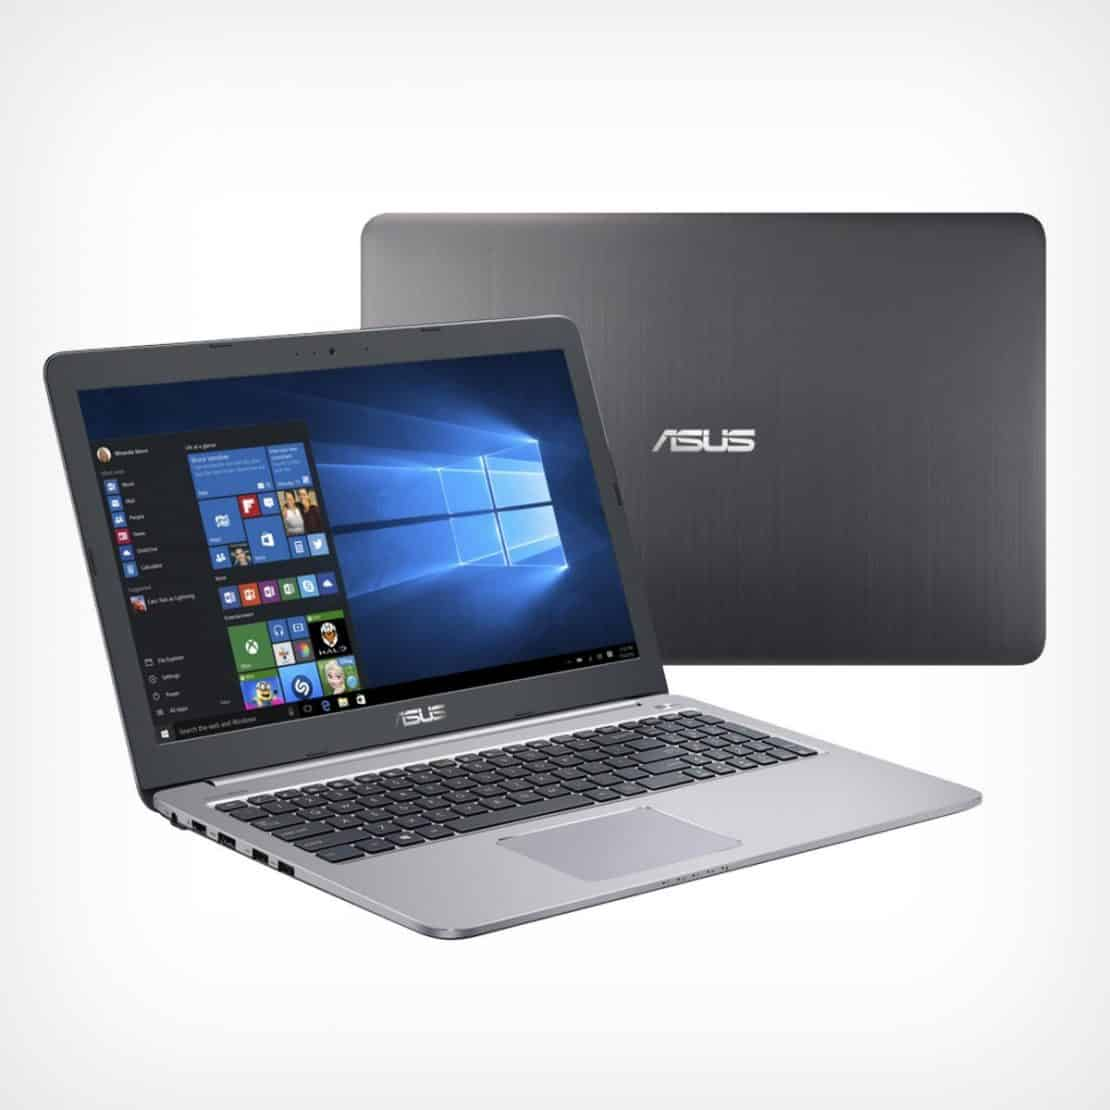 ASUS K501LX 15.6 Gaming Laptop - Best Gaming Laptops Under 1000 USD - Budget Gaming Laptop For Less Than 1000